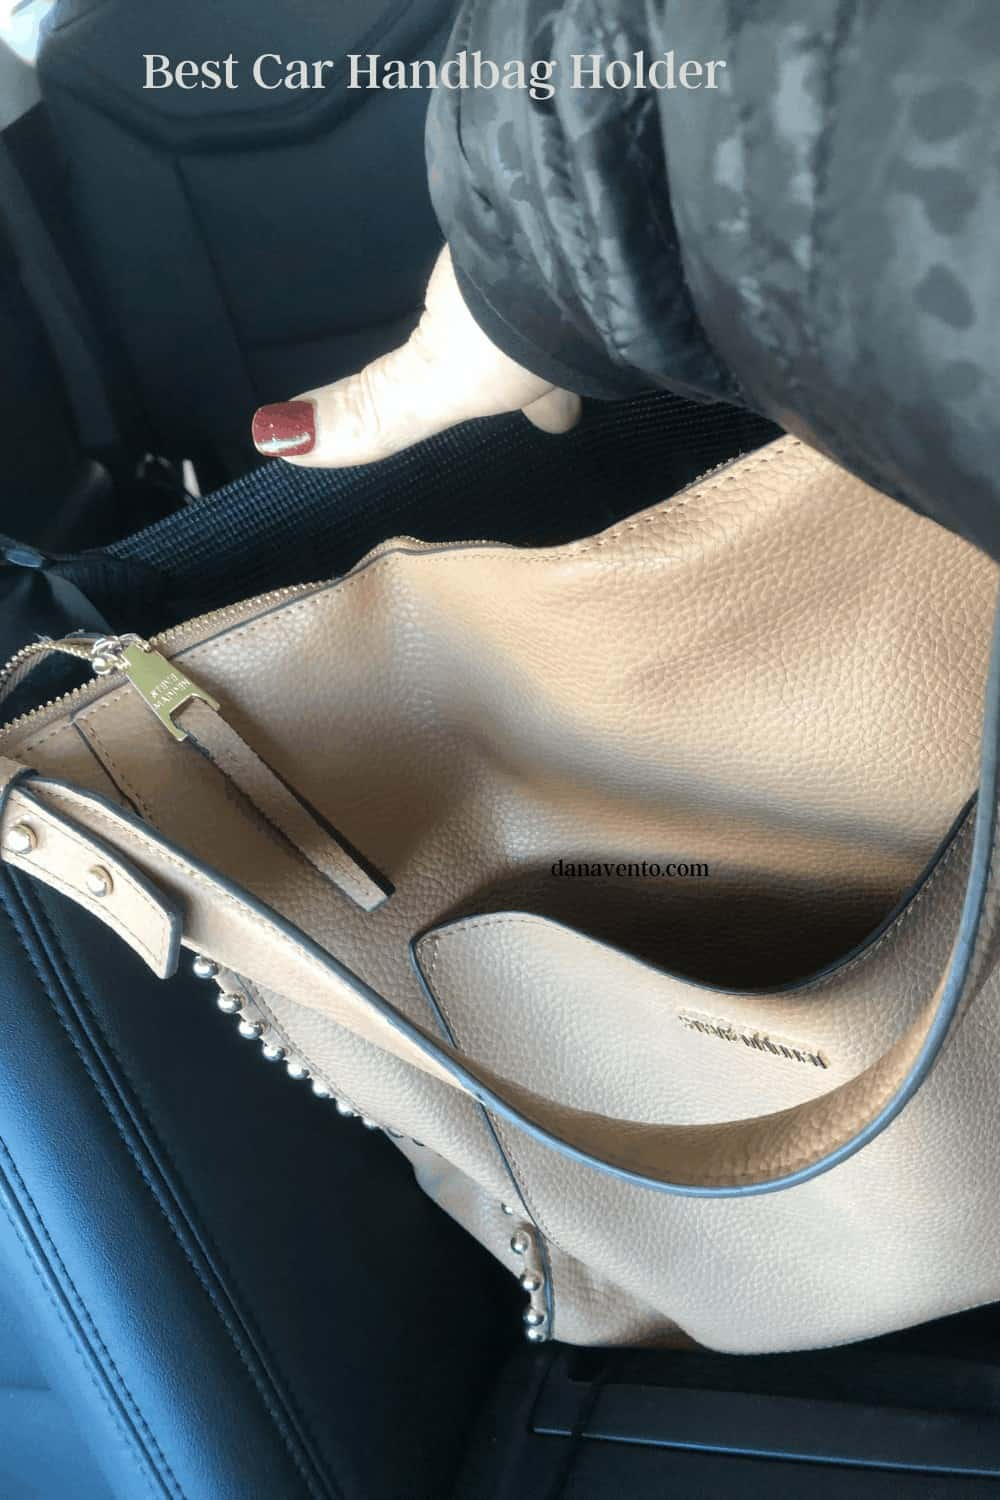 handbag and holder with my hand going in bag